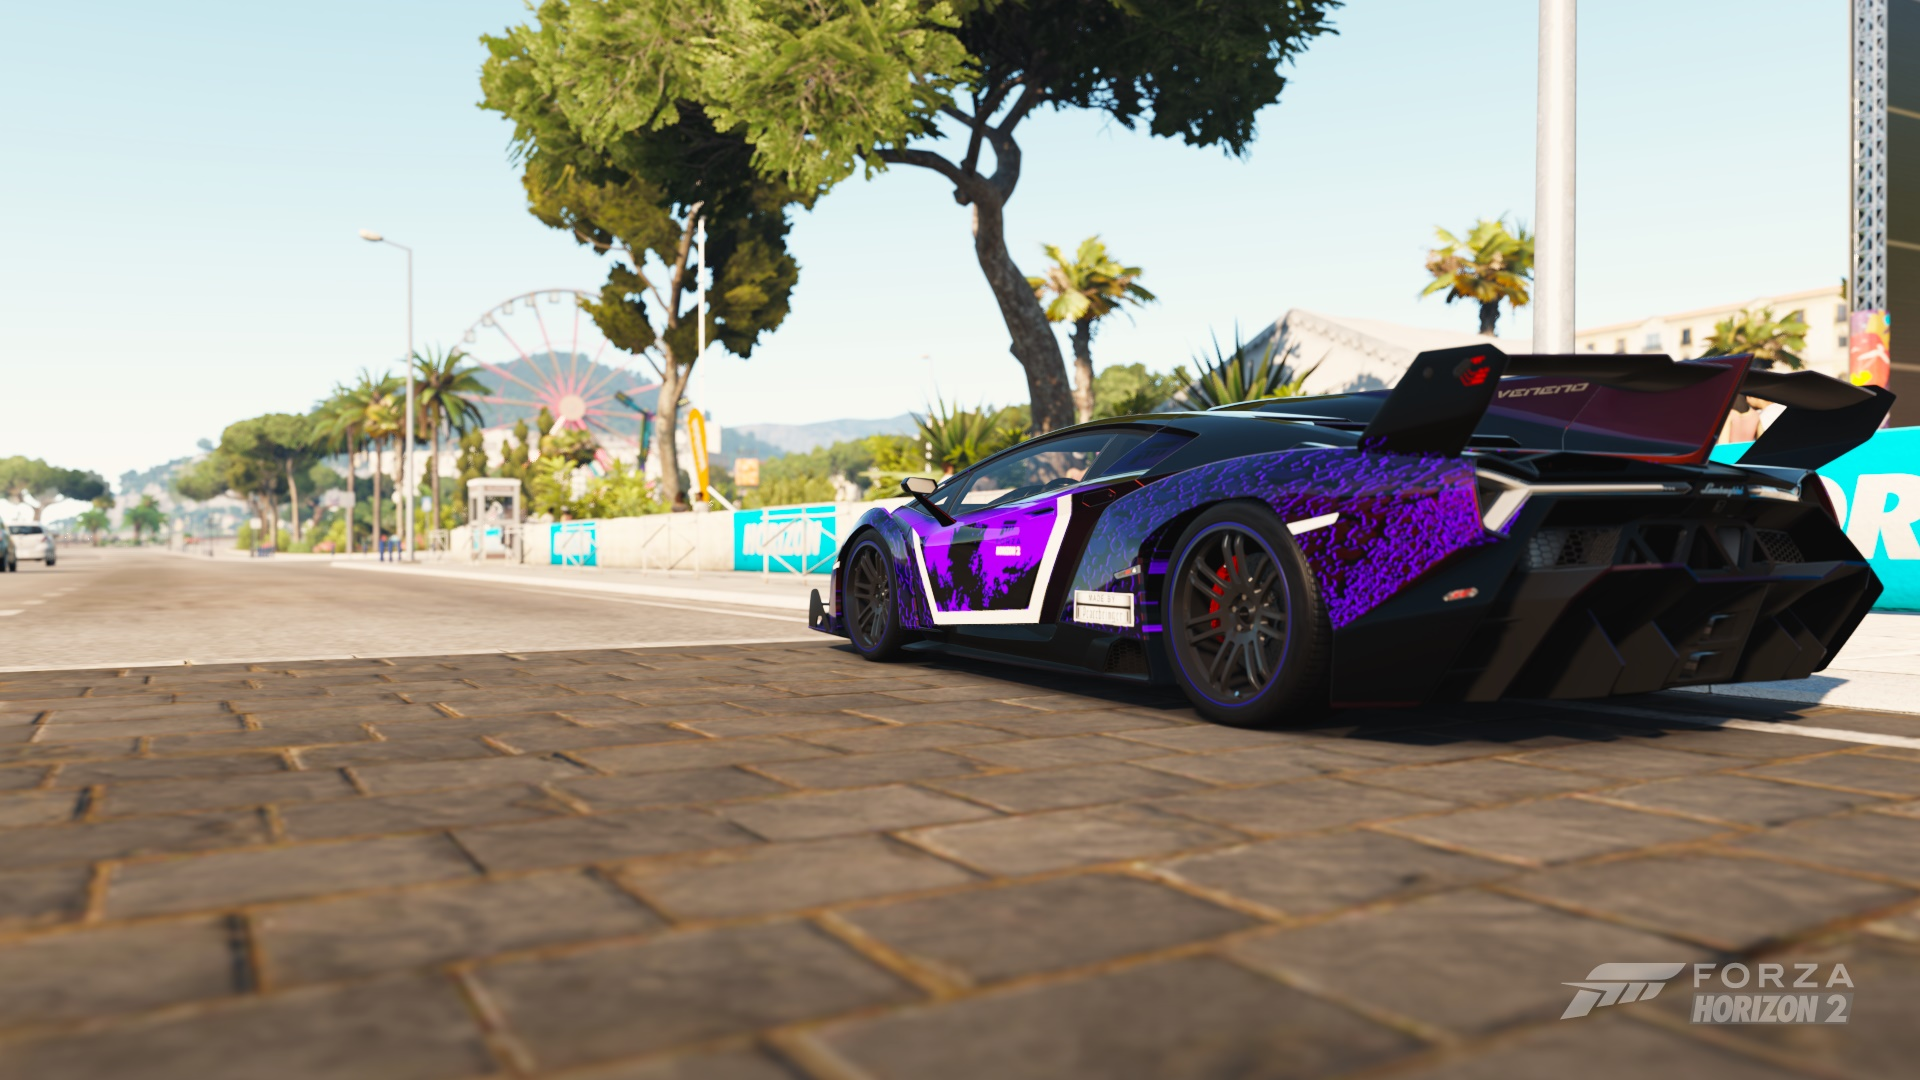 Lamborghini Veneno Is One Of Best Cars In Forza Horizon 2. Be Best And Look  Like Best With This Design.